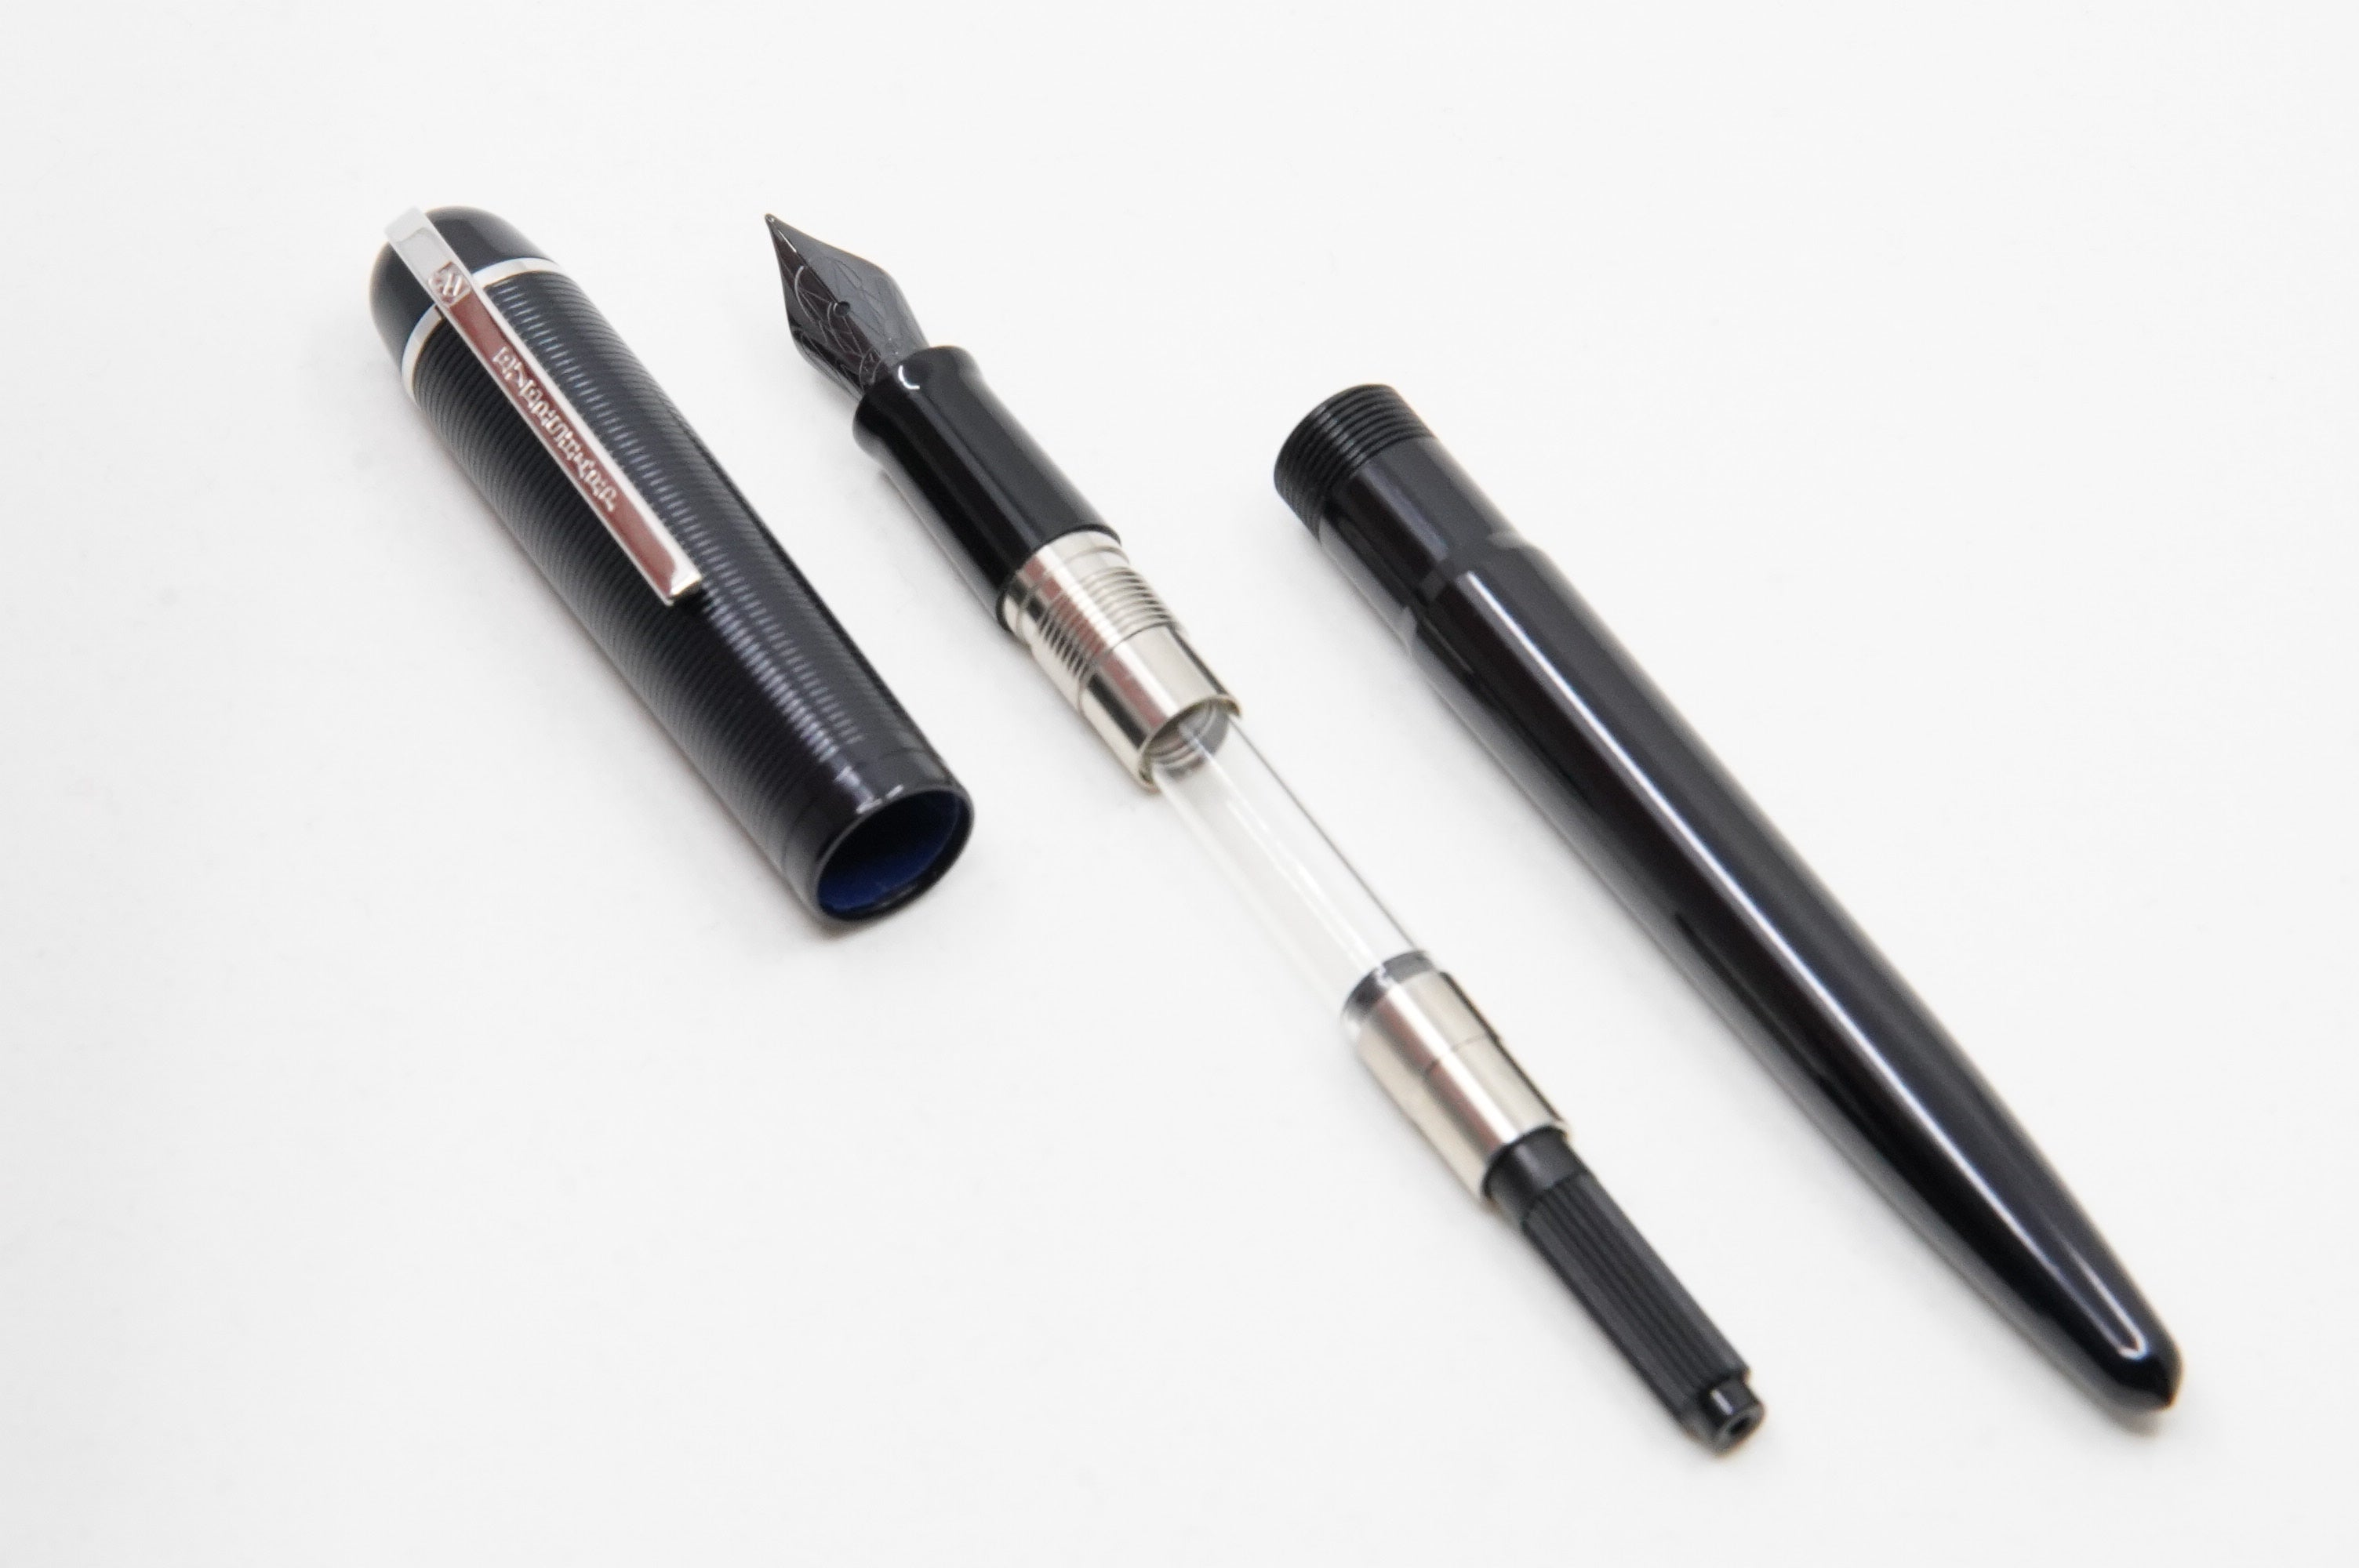 Wahl Eversharp Skyline FP Aluminium black  - The iconic SKYLINE created by Henry Dreyfus in 1939